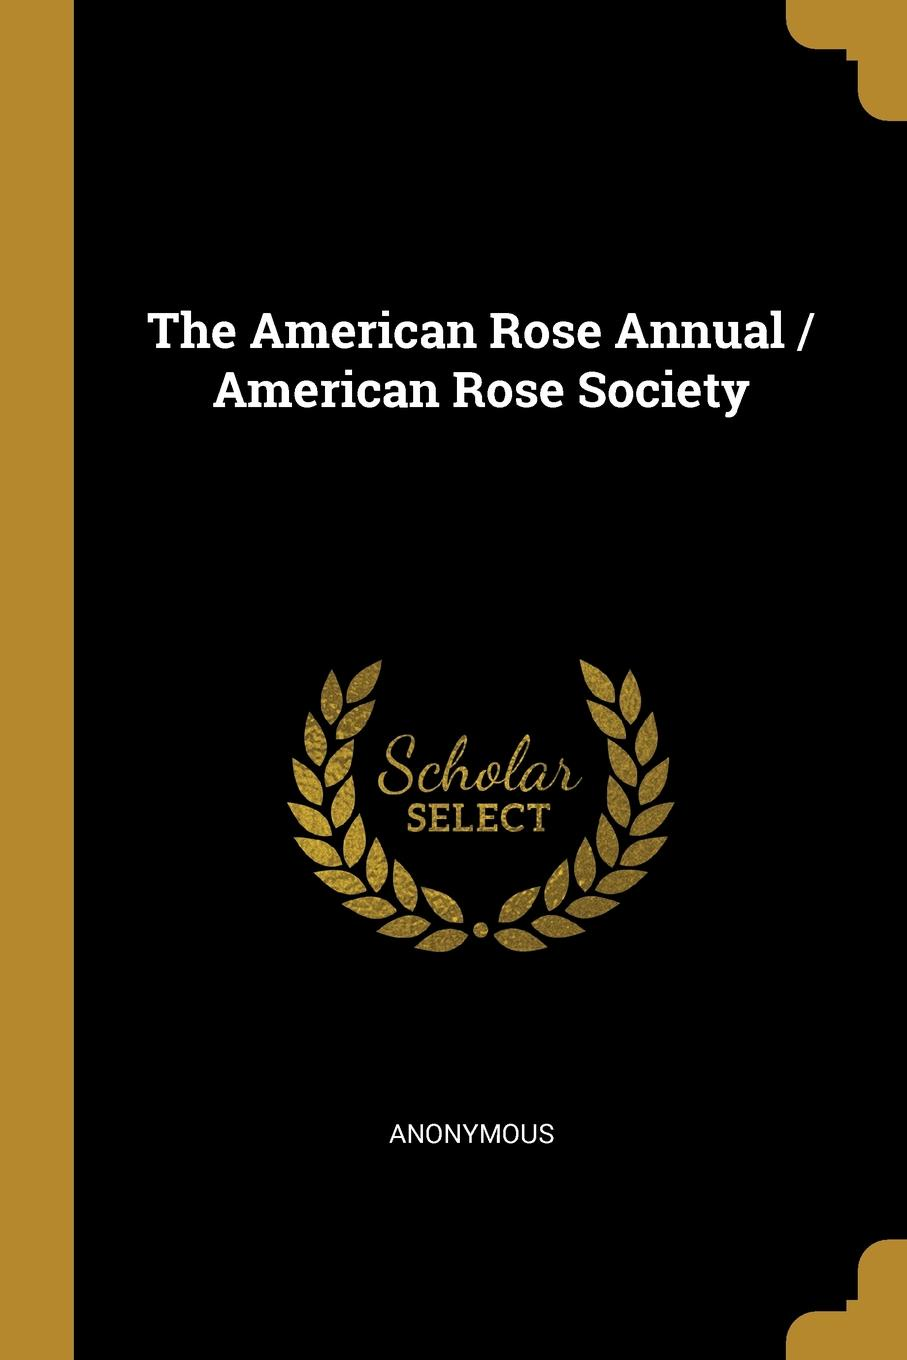 The American Rose Annual / American Rose Society